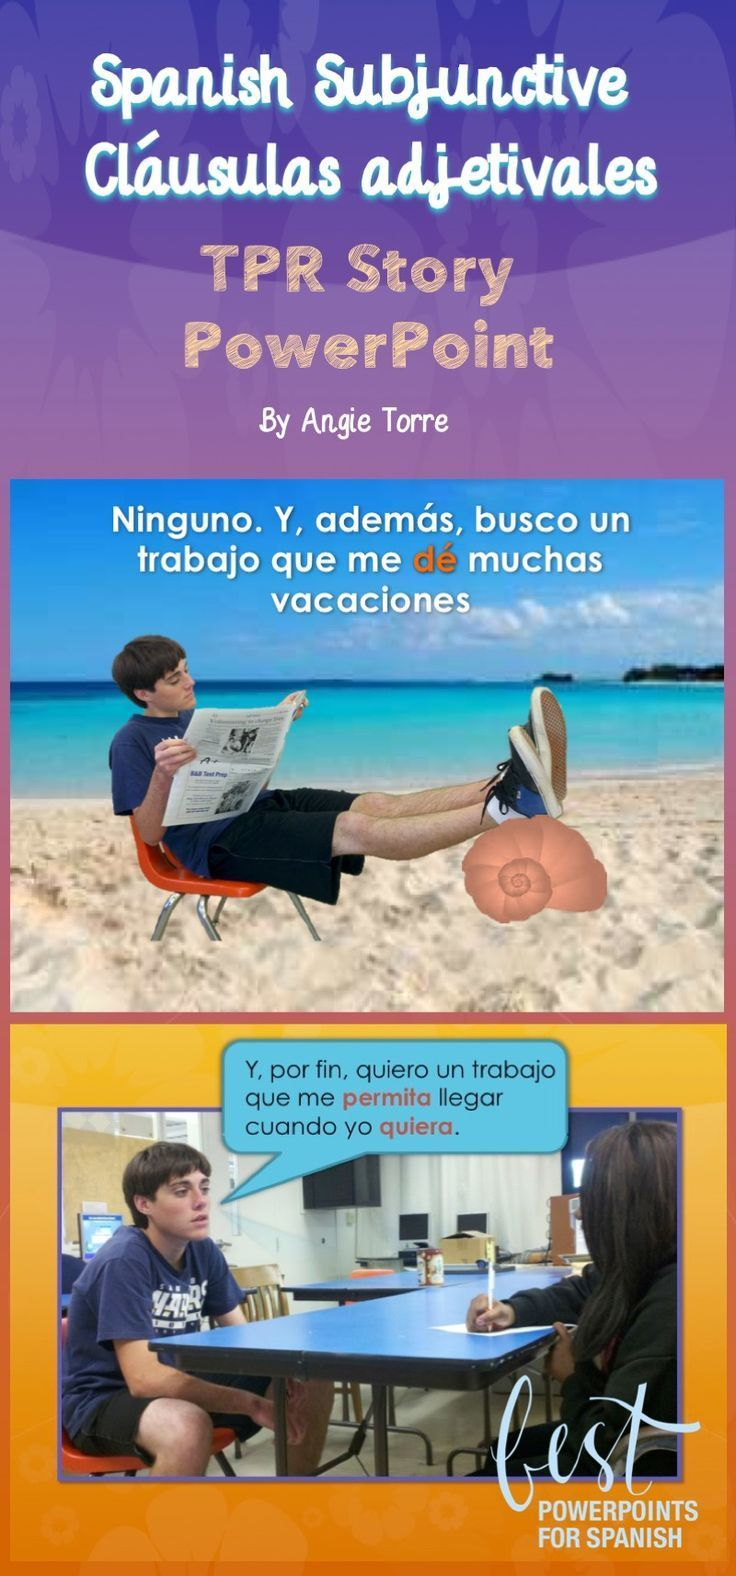 This 25-slide Subjunctive Cláusulas Adjetivales TPR Story PowerPoint provides many examples of the Spanish subjunctive with cláusulas adjetivales. Paco, in his search for a job, goes to visit he career counselor. She asks him questions to help him decide what career to pursue. In the end, he does not get a job but he does get something from the counselor. Also included: activity in which students answer true or false; the password